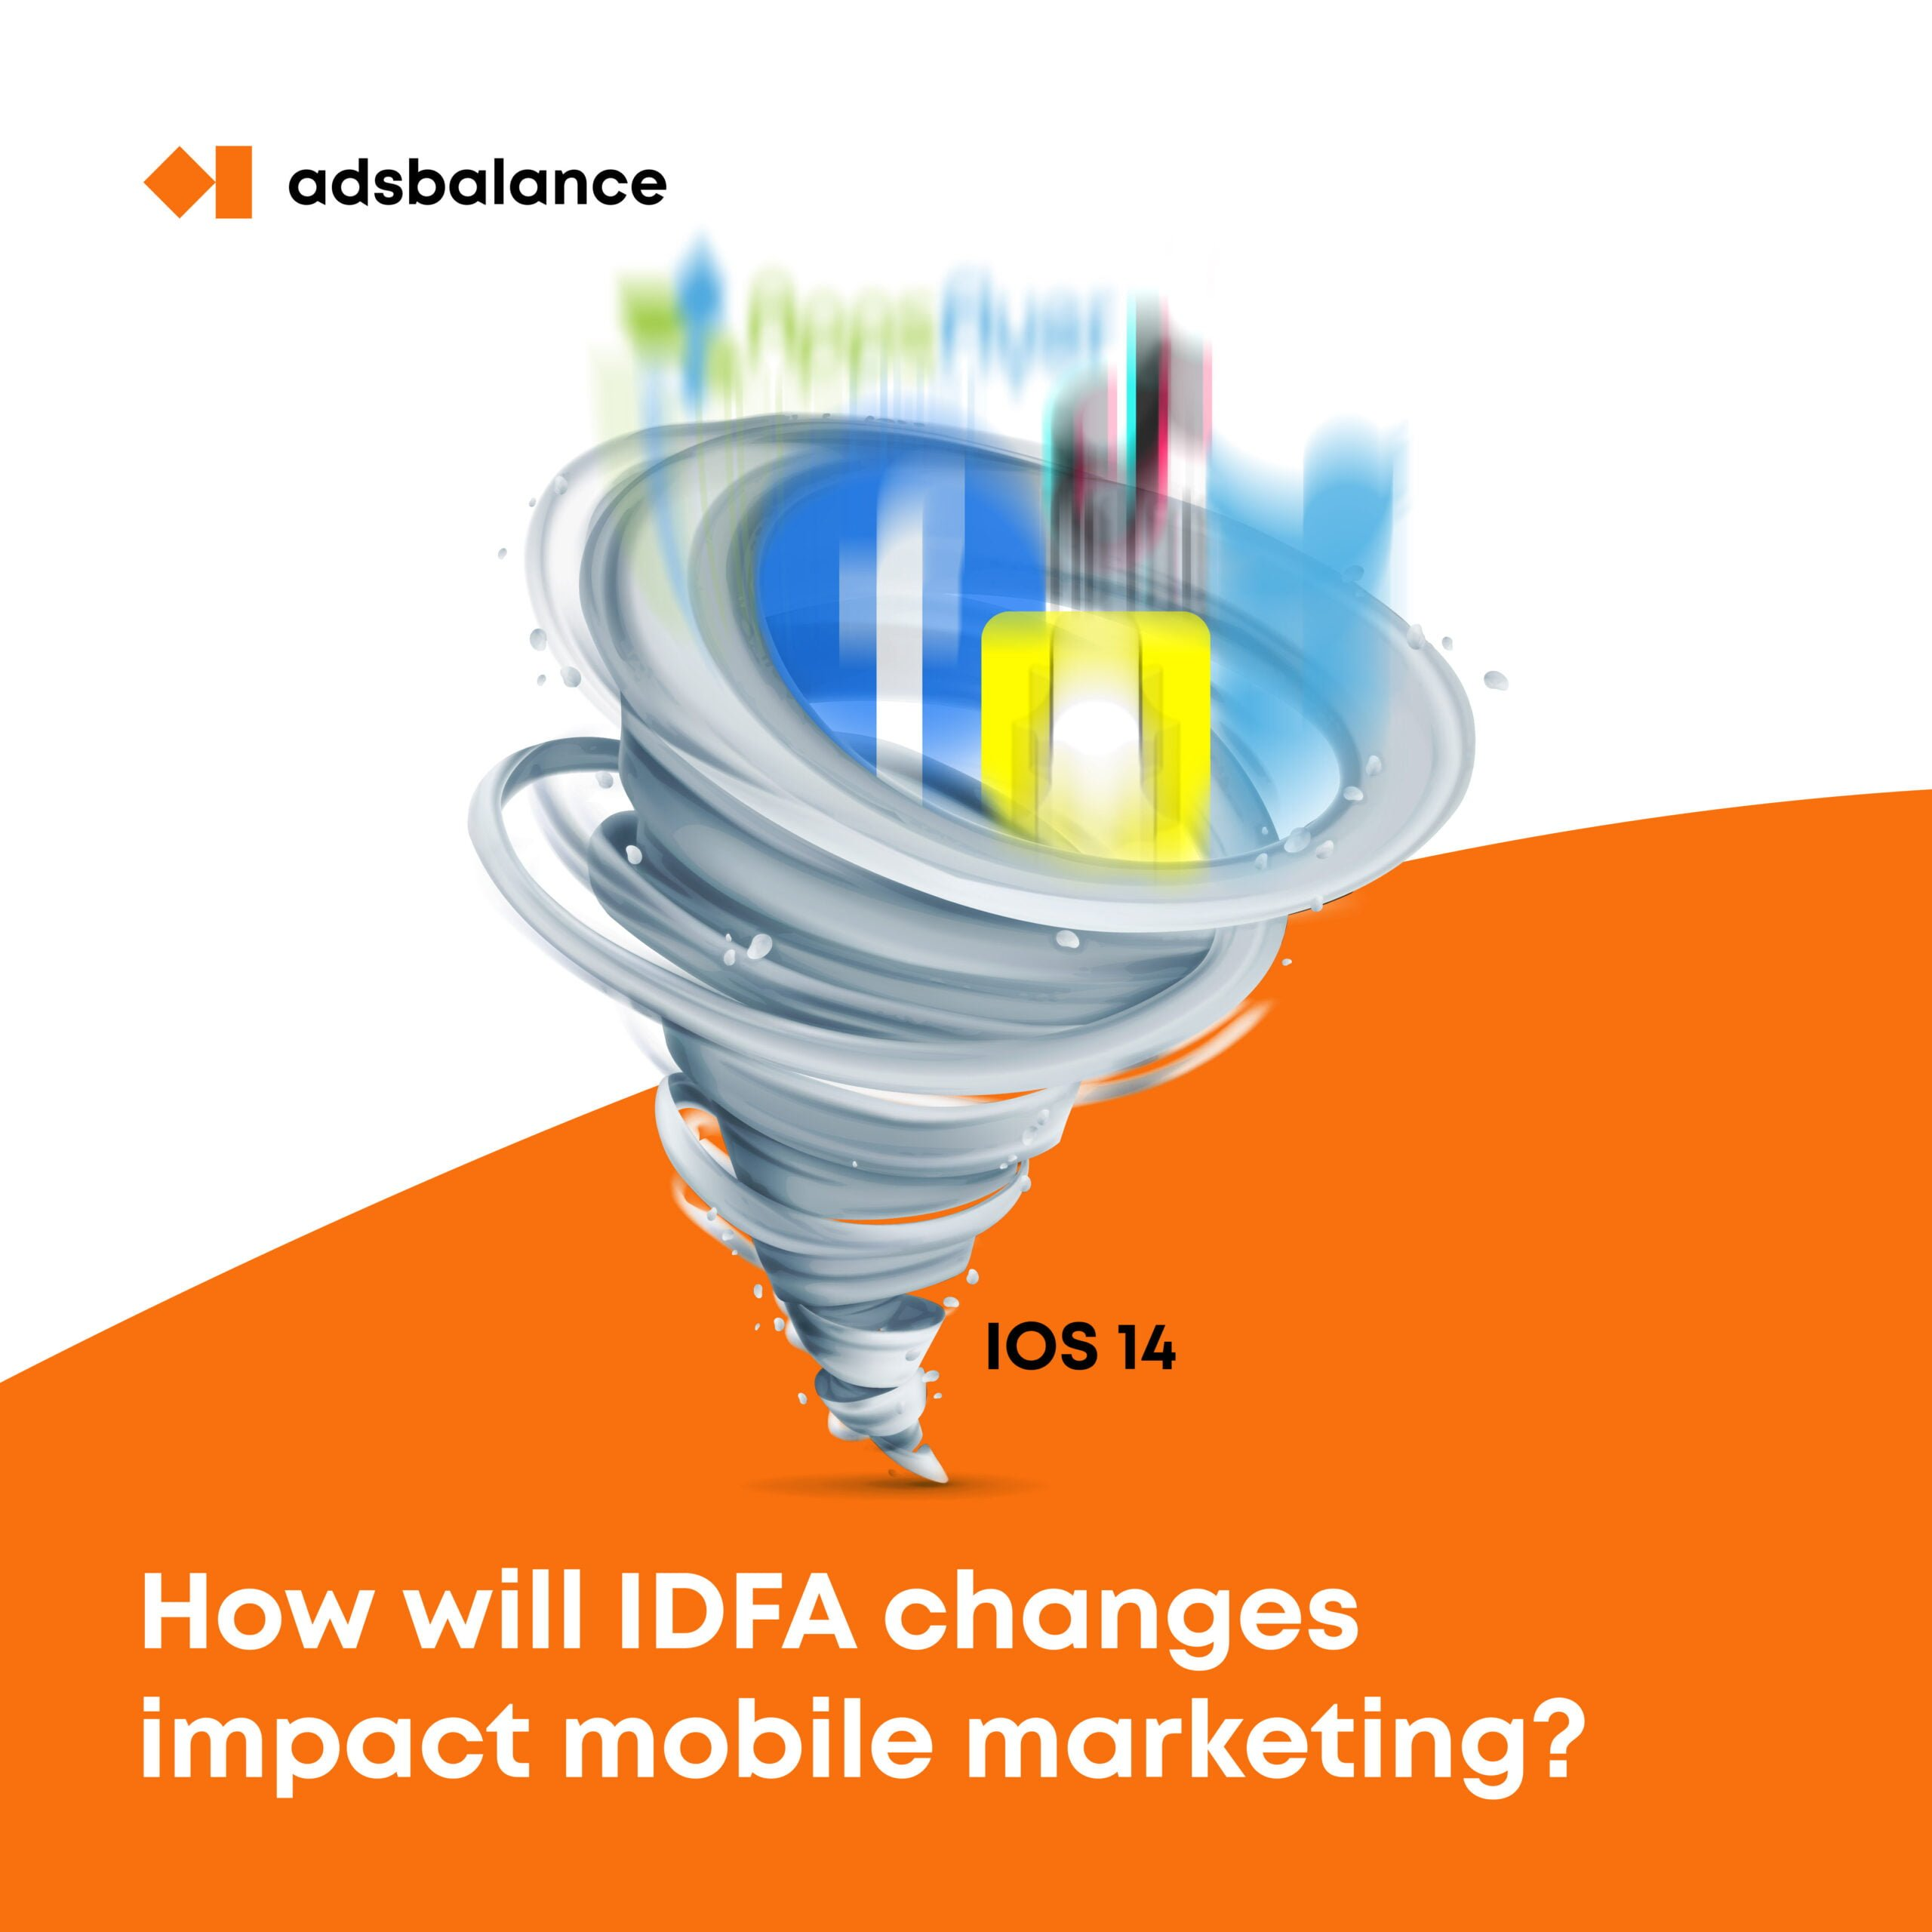 How will IDFA changes impact mobile advertising?